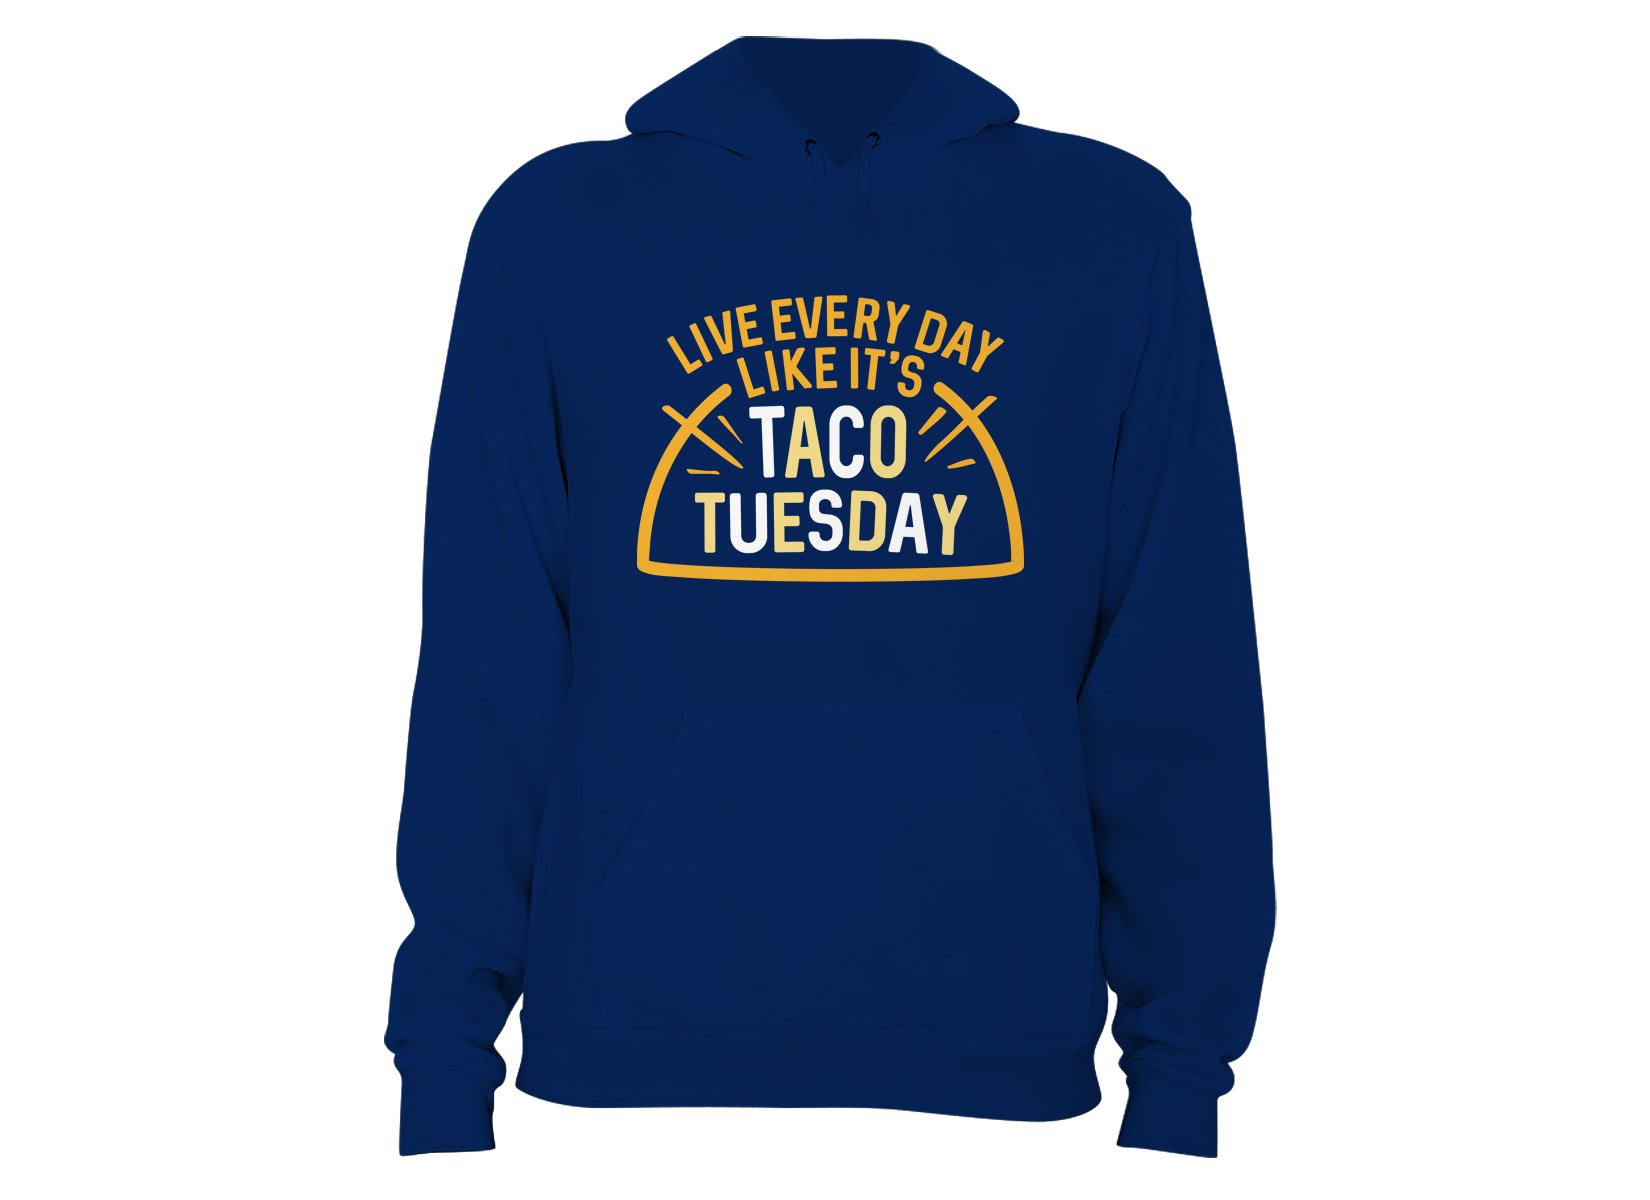 Taco Tuesday on Hoodie